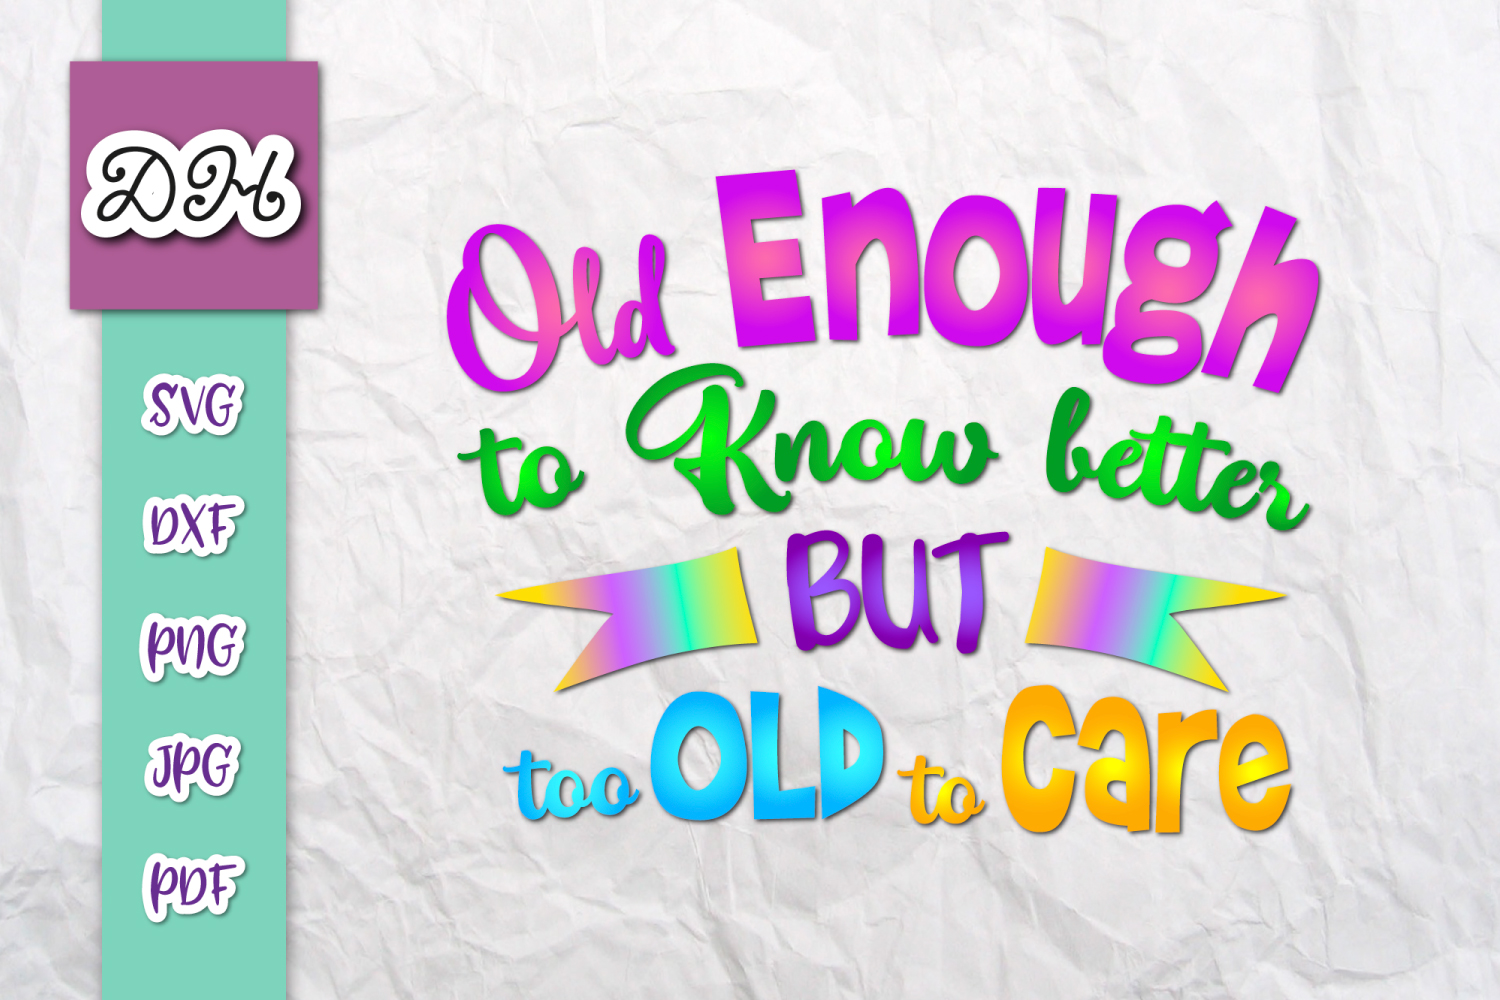 Download Free Old Enough To Know Better Too Old To Care Graphic By Digitals By for Cricut Explore, Silhouette and other cutting machines.